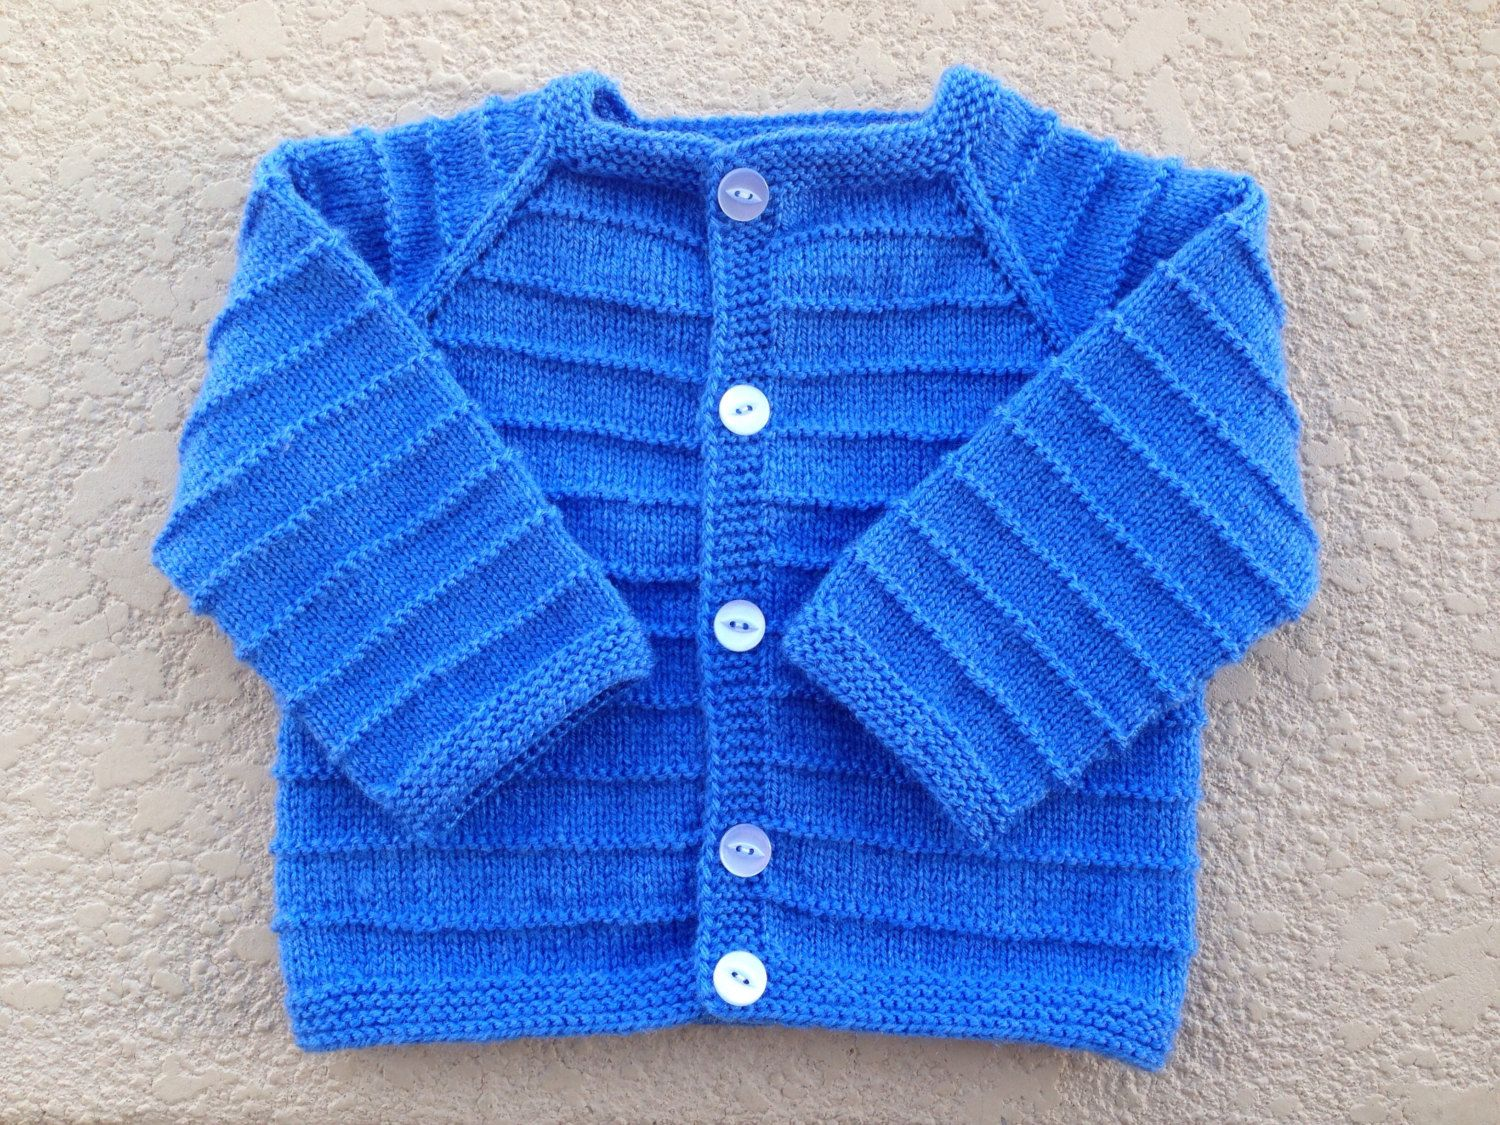 Hand knitted baby boy or girl cardigan sweater months old blue